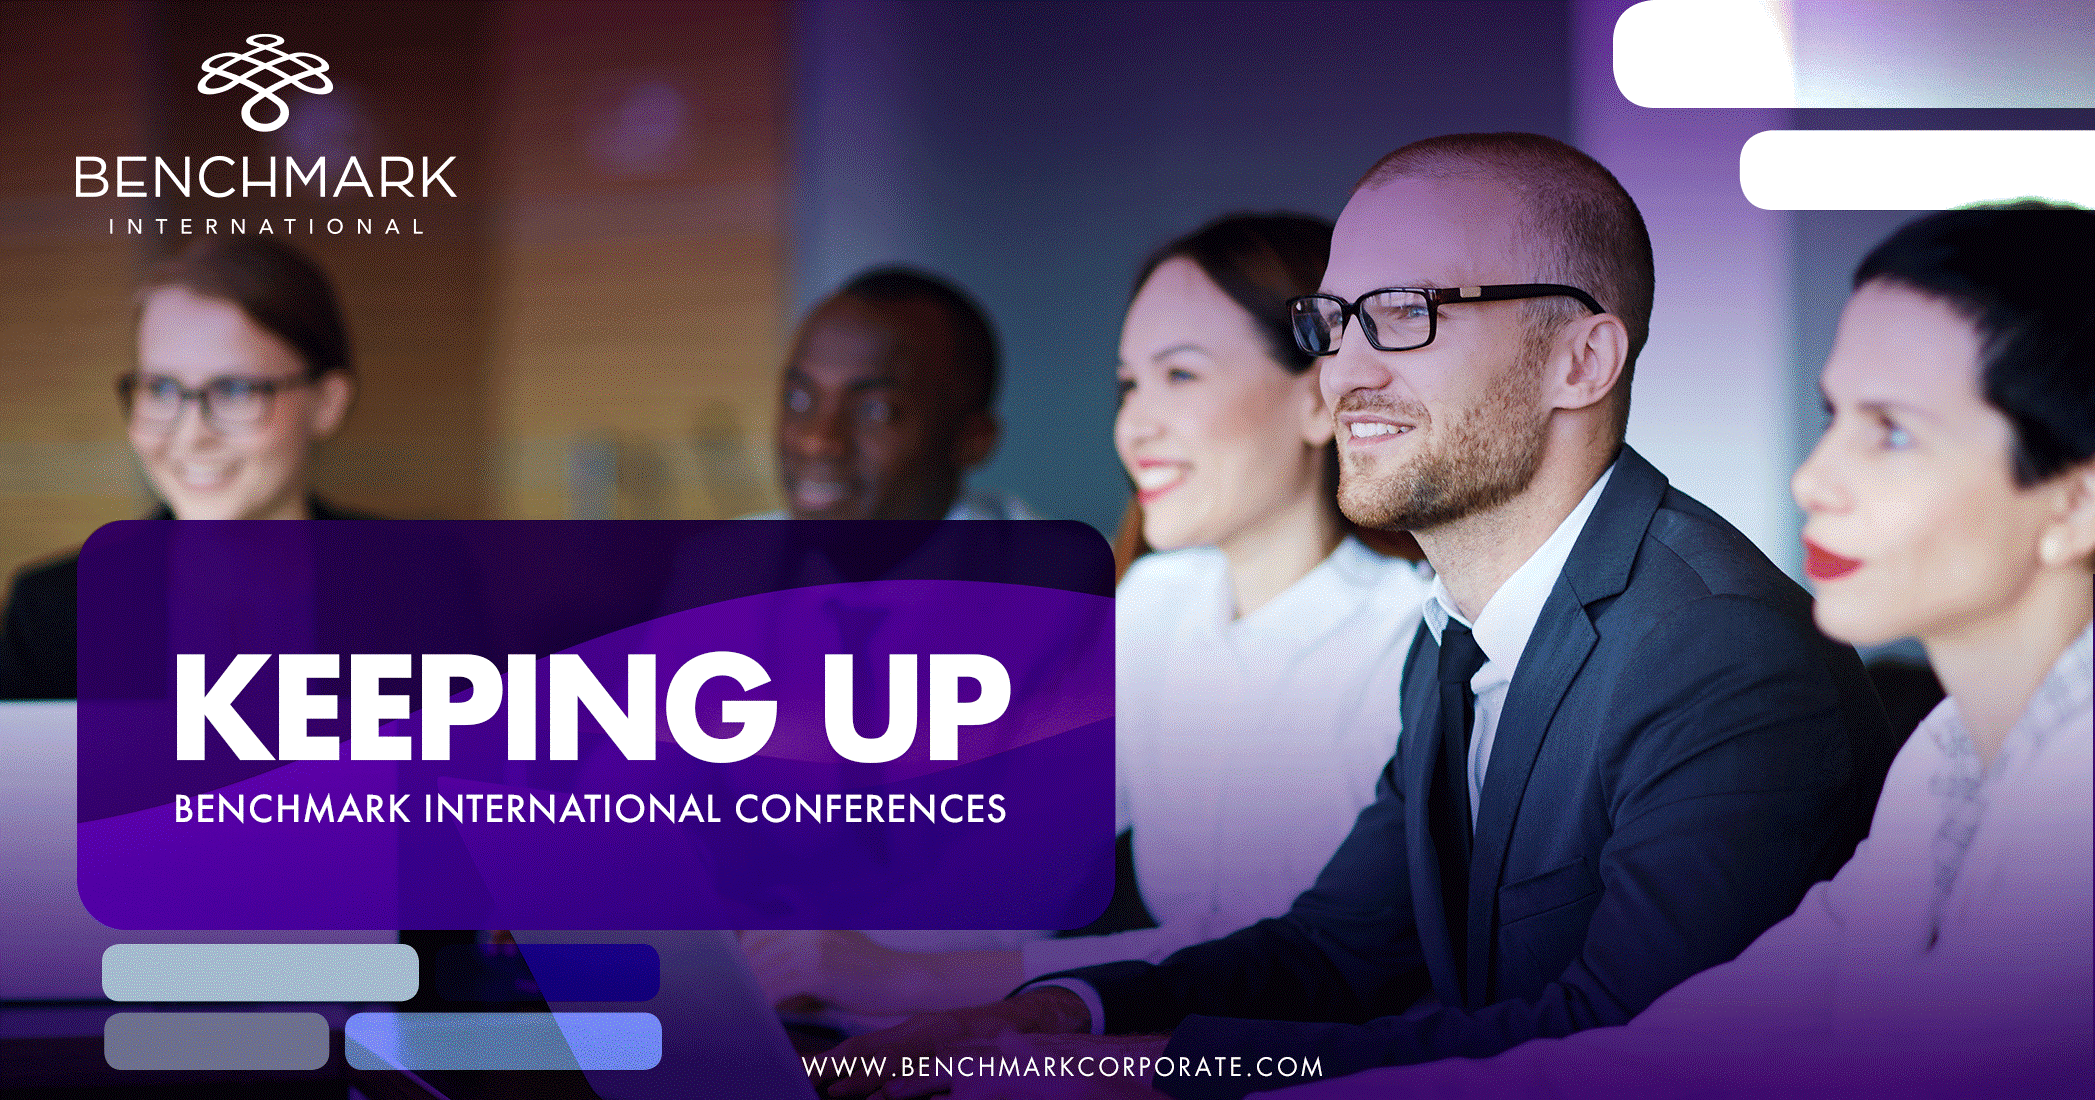 Keeping Up: Benchmark International Conferences